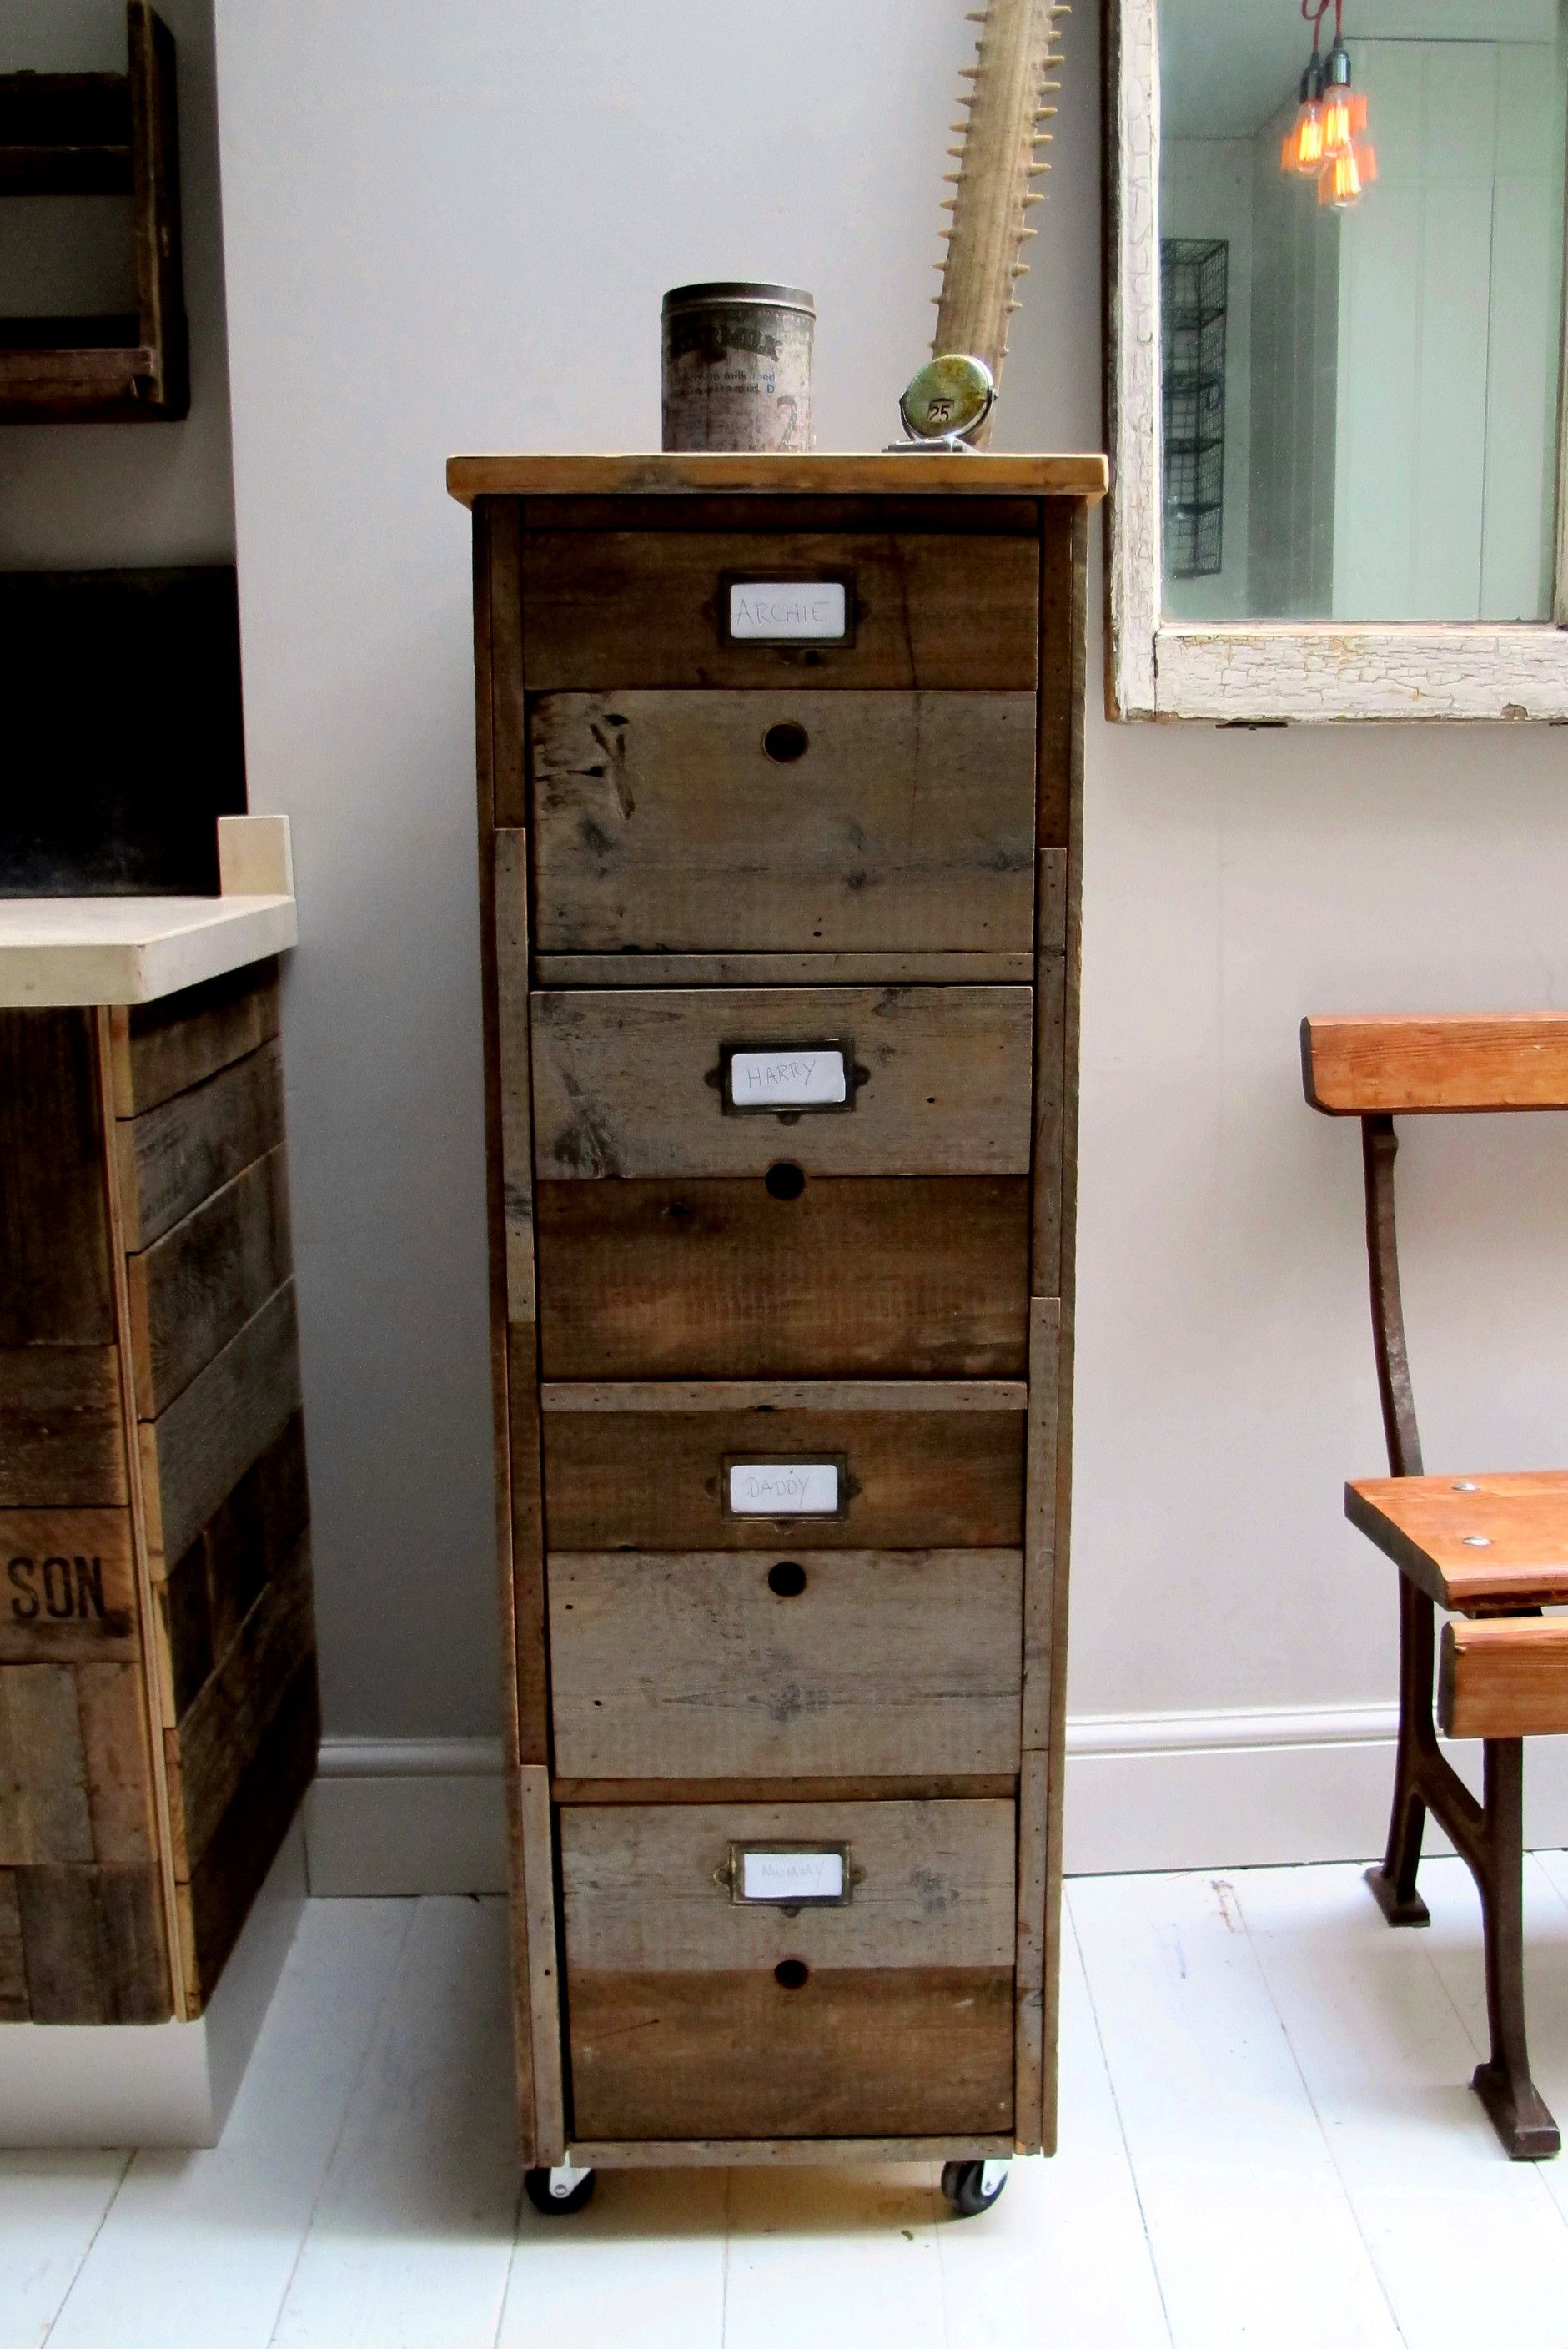 Quirky Filing Cabinet, unusual storage, industrial feel.